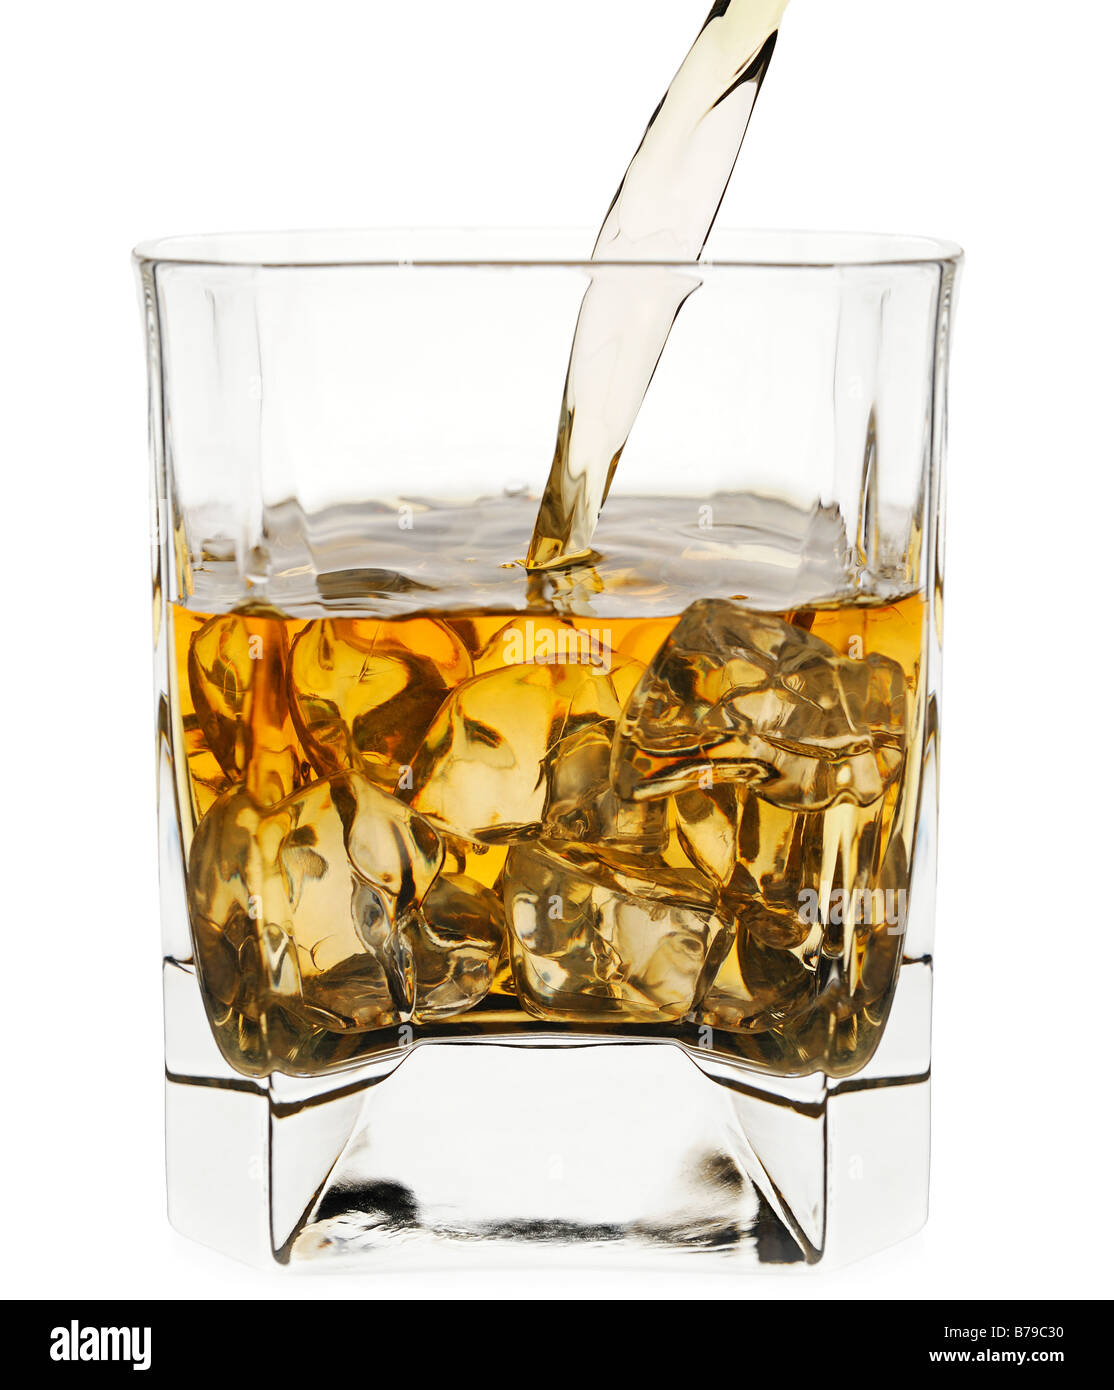 Pouring Whisky into a Glass Close Up - Stock Image